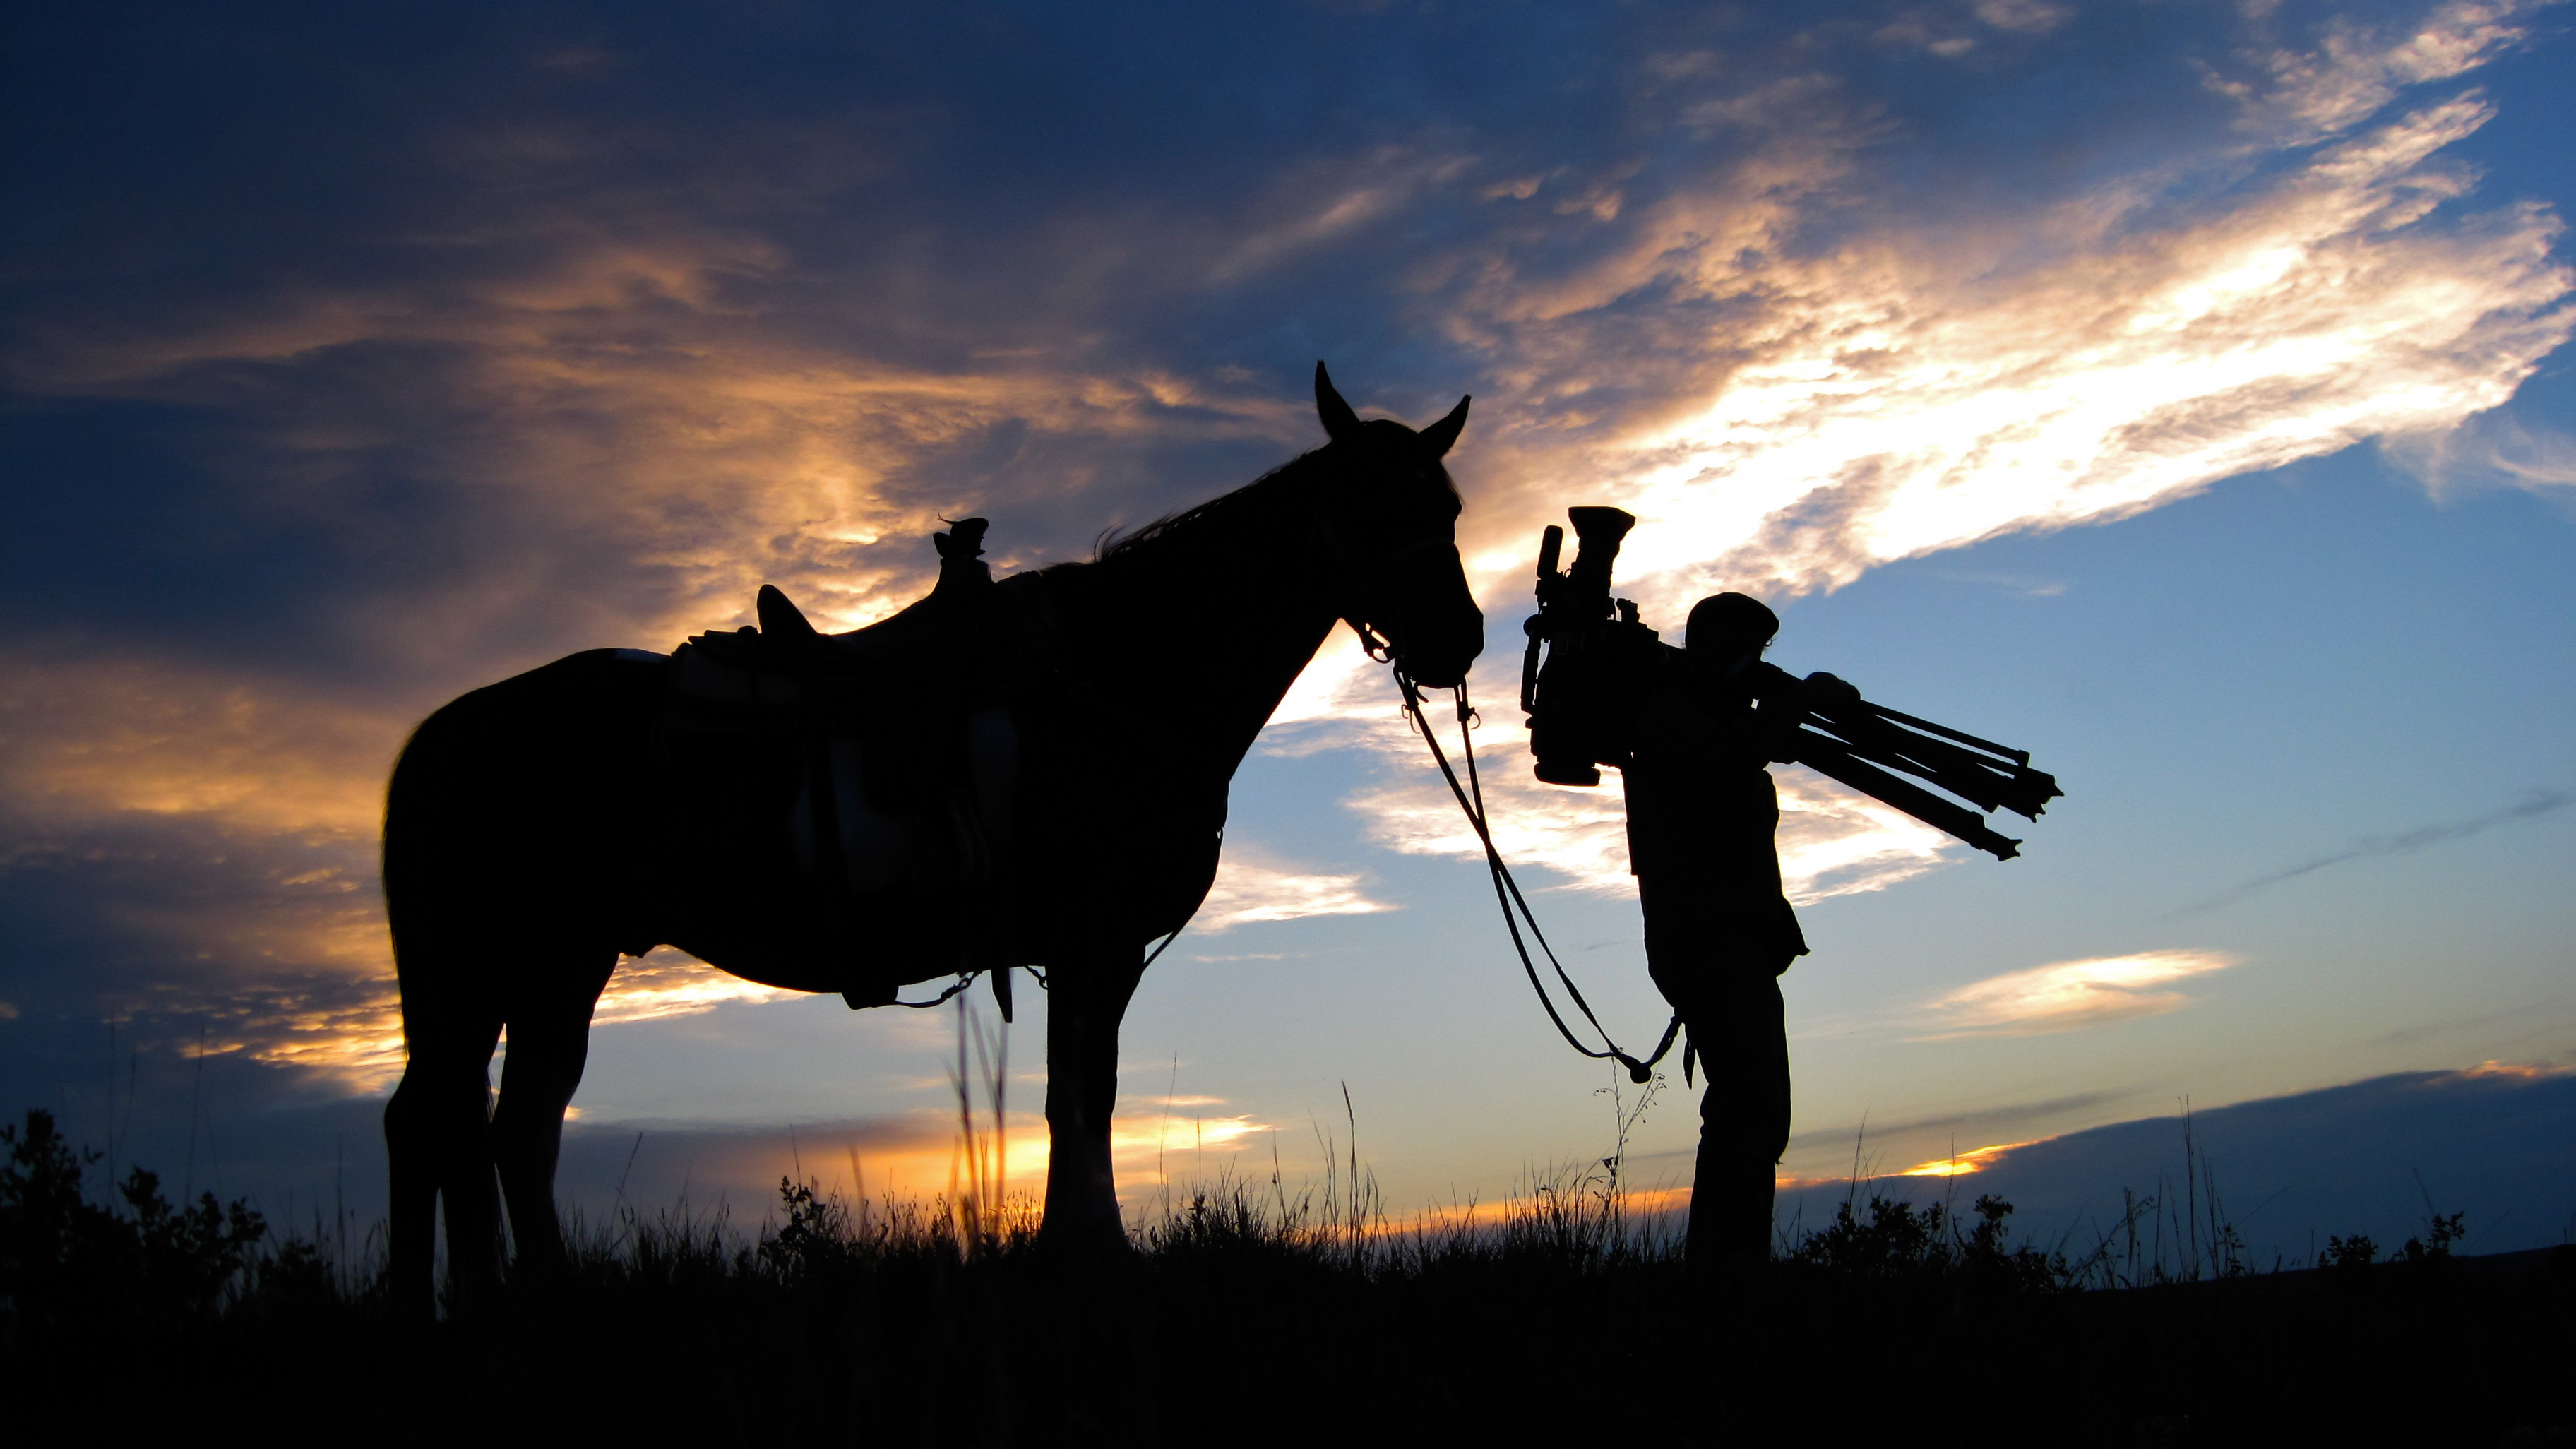 cameraman and guide horse enjoying the sunset